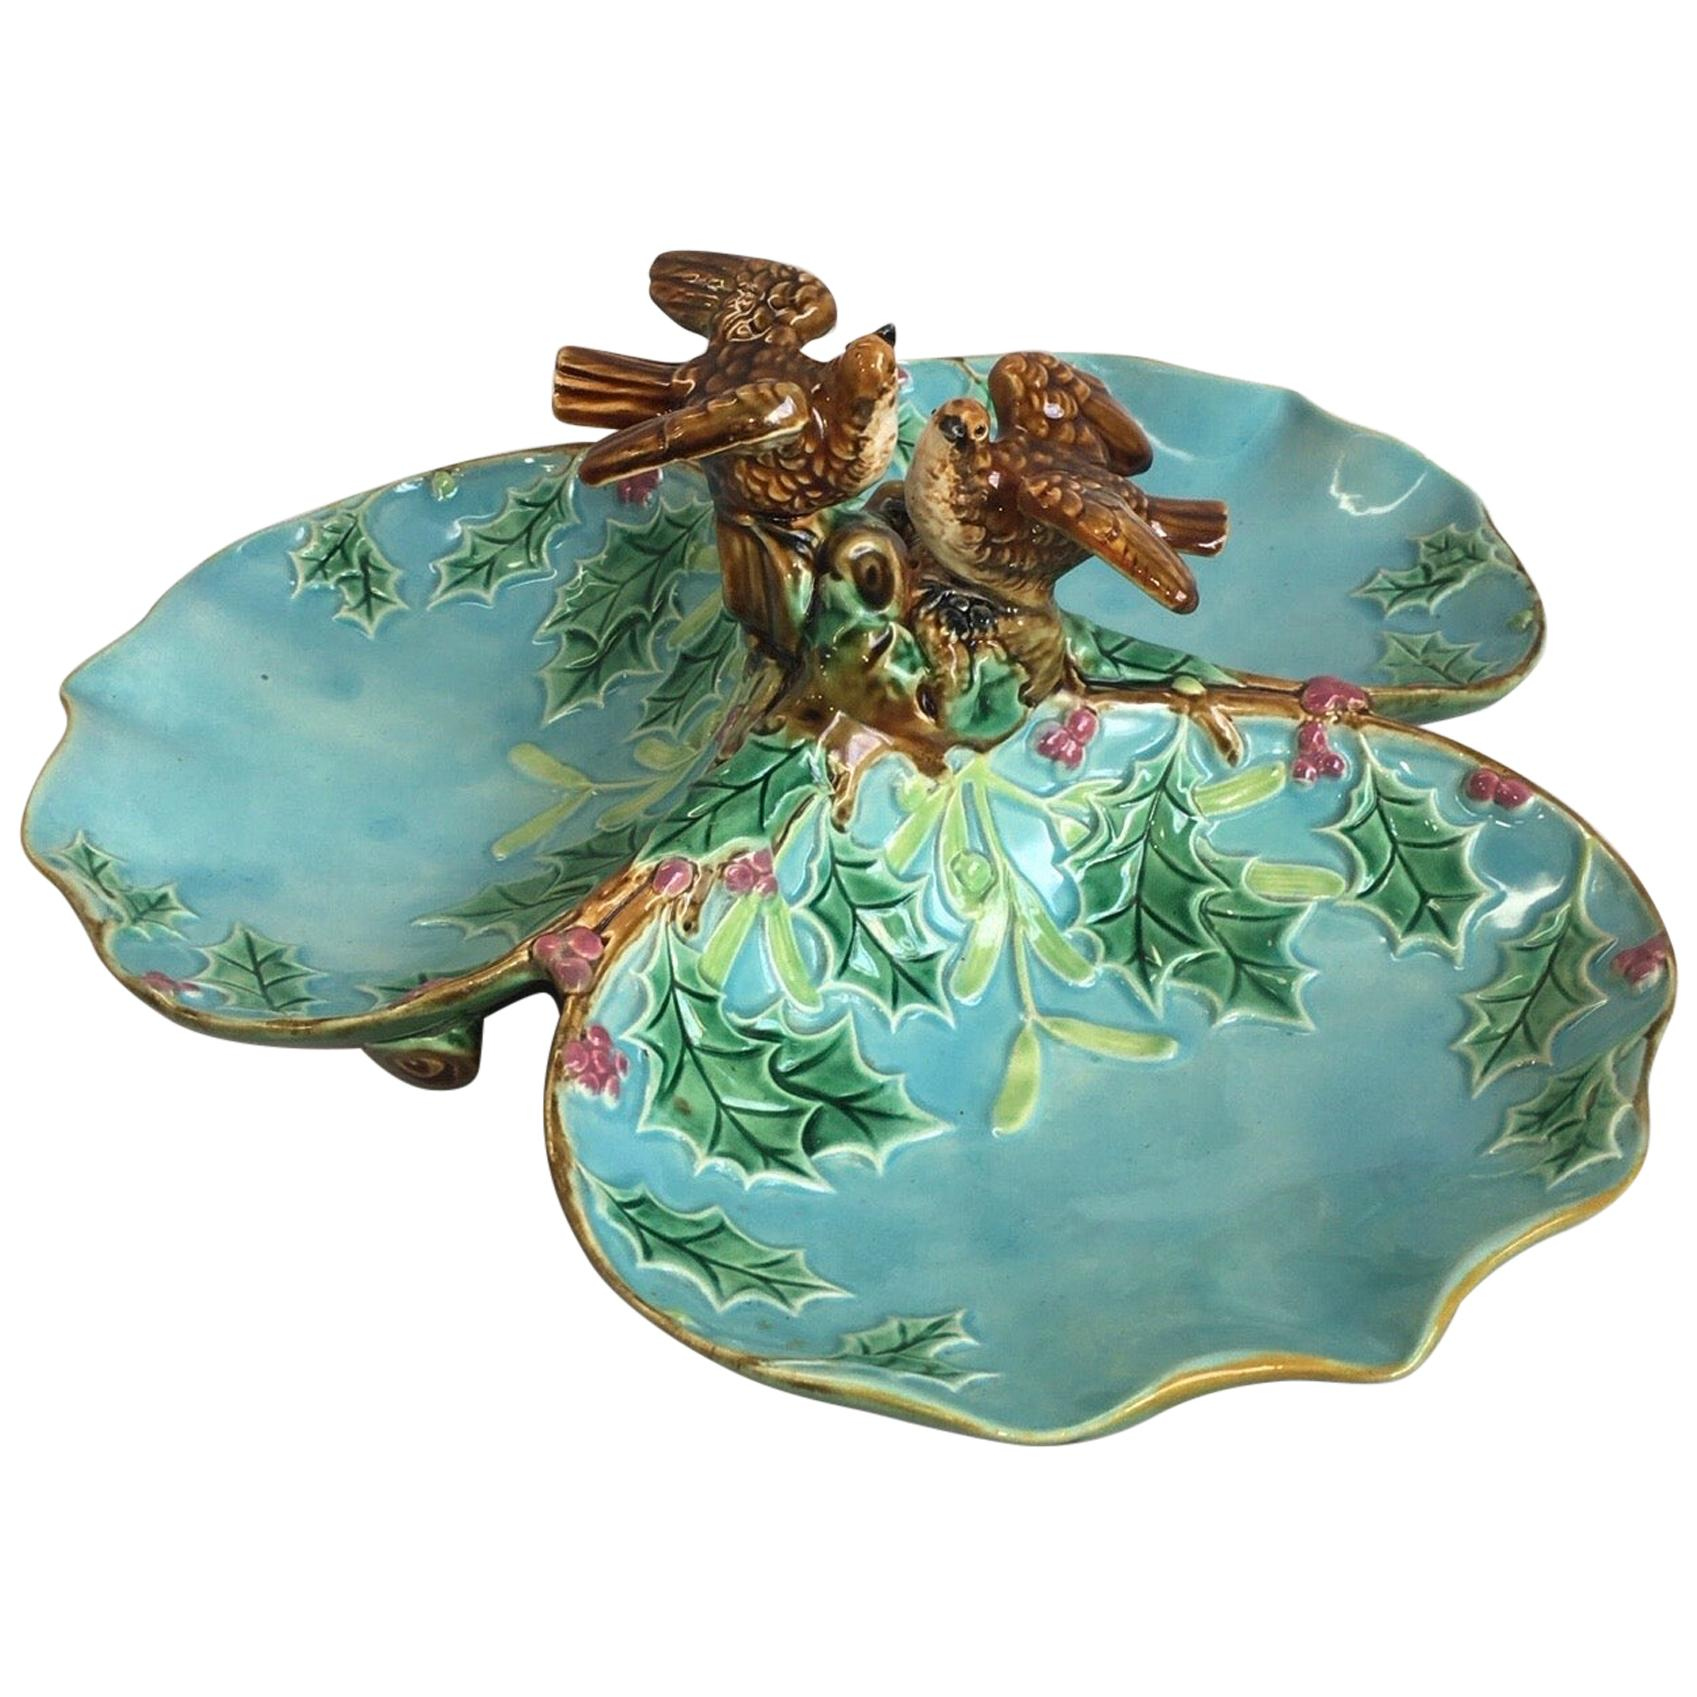 Majolica Three Part Server with Holly and Birds George Jones